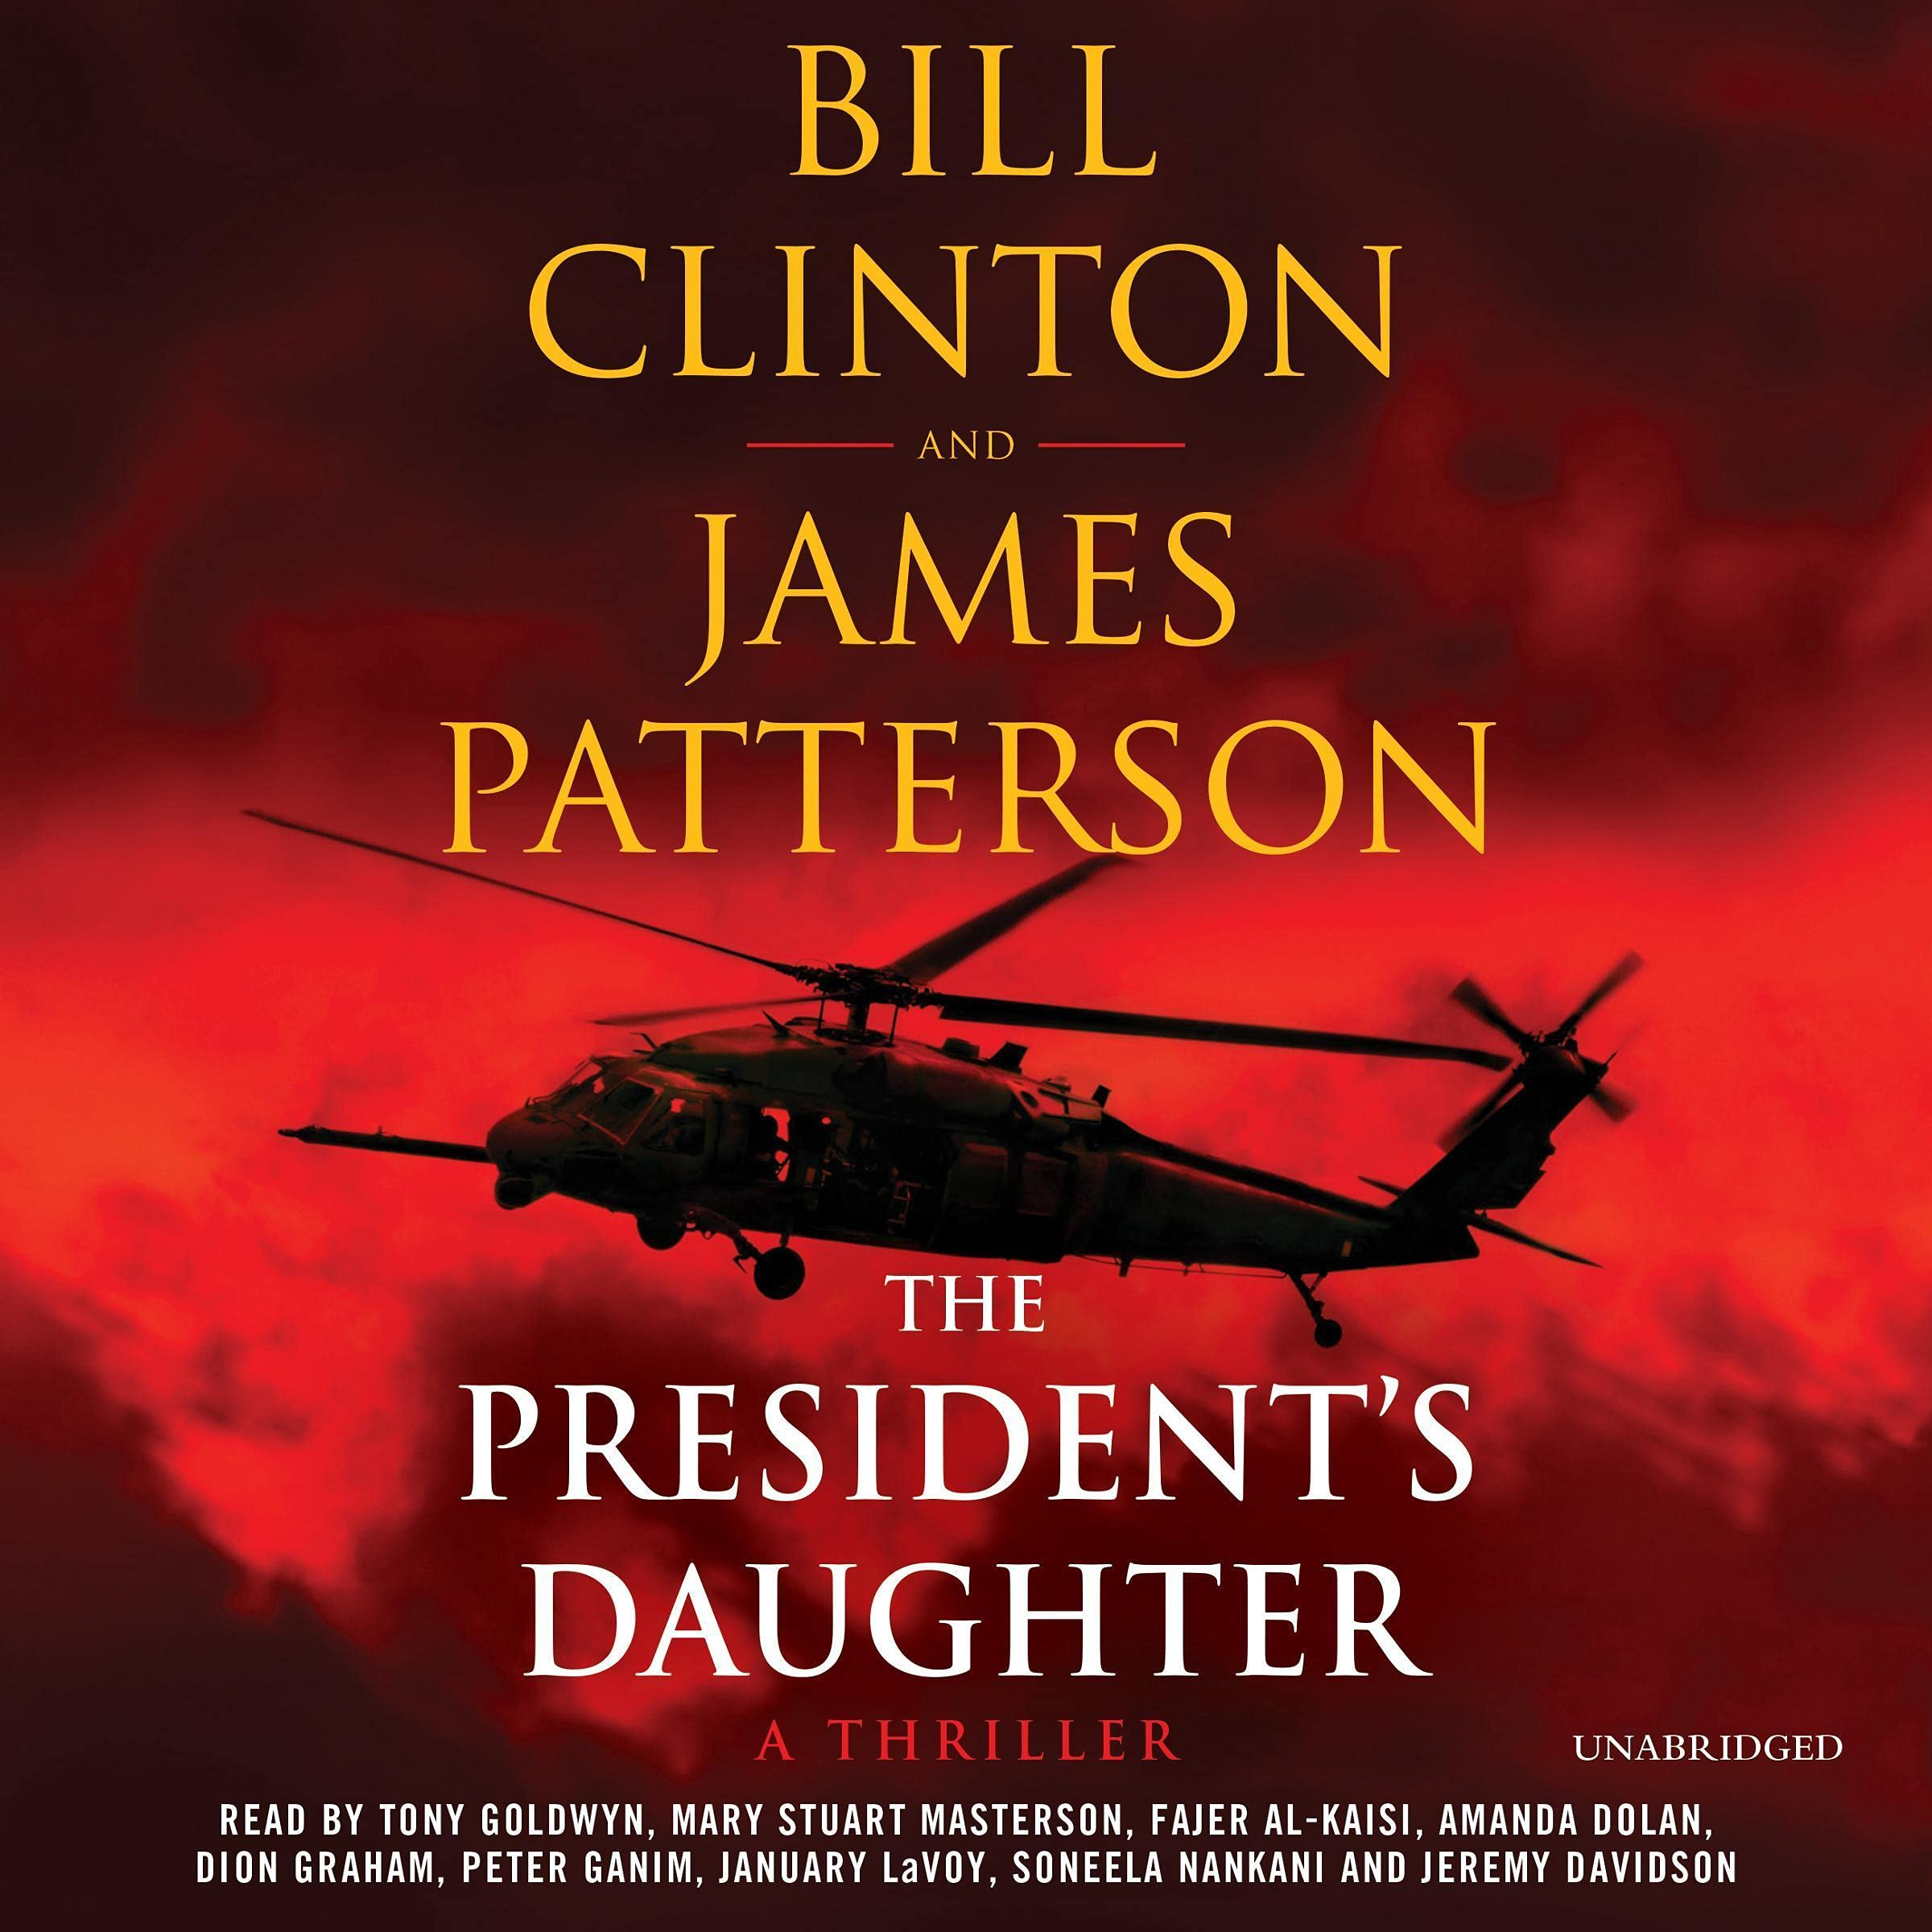 Bill Clinton and James Paterson